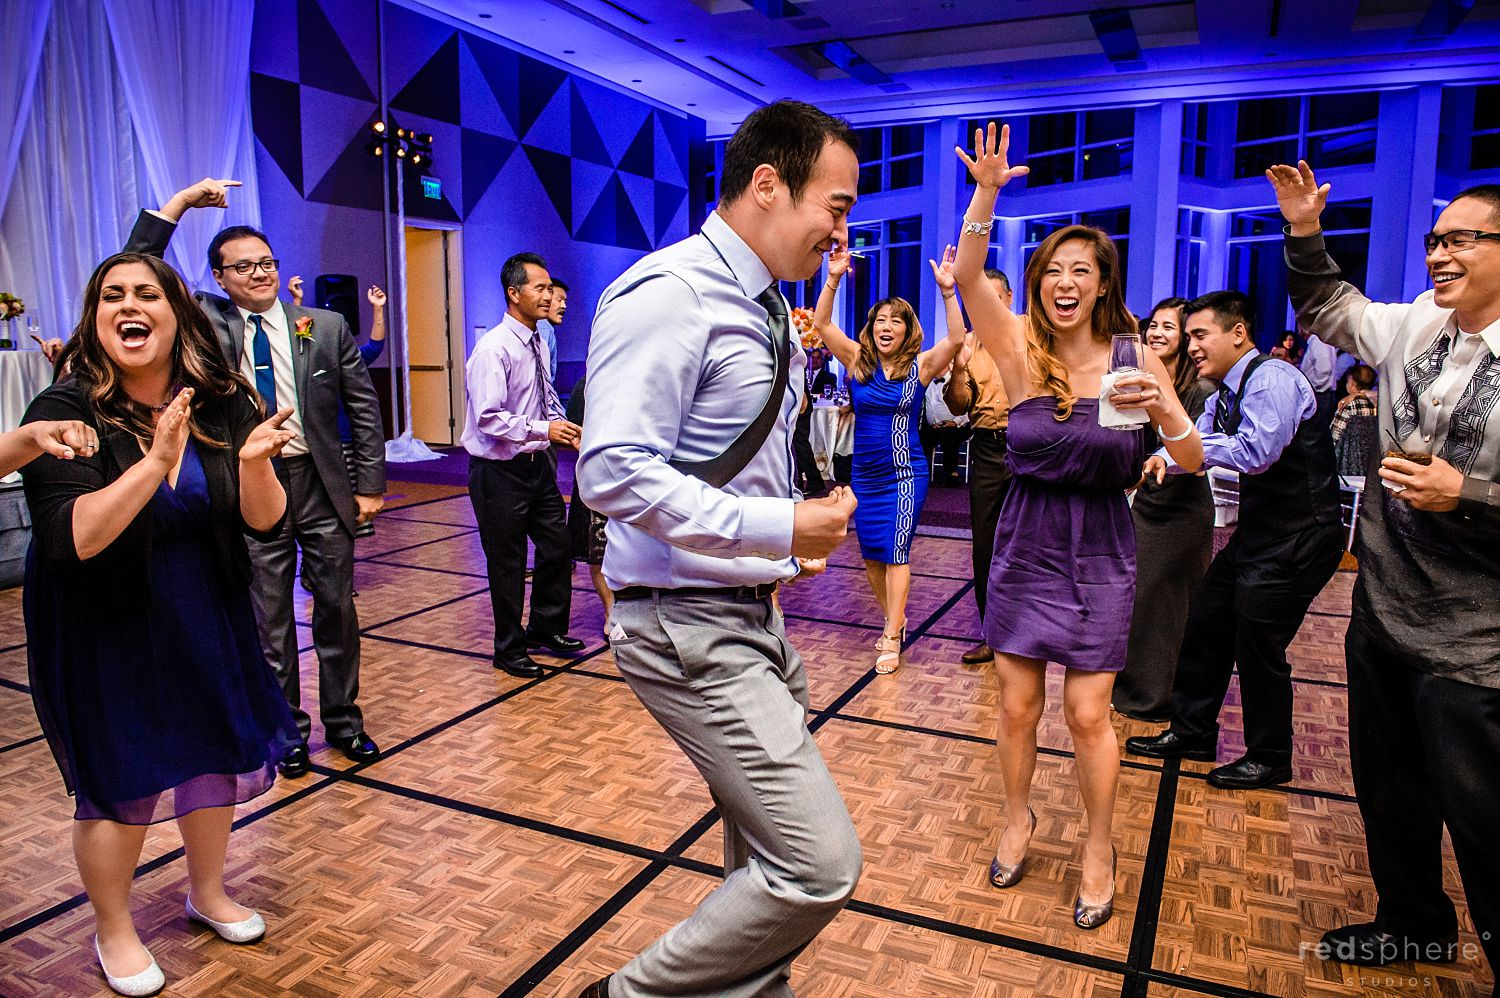 Guests Dance and Cheer Each Other on at Intercontinental Hotel Wedding Reception